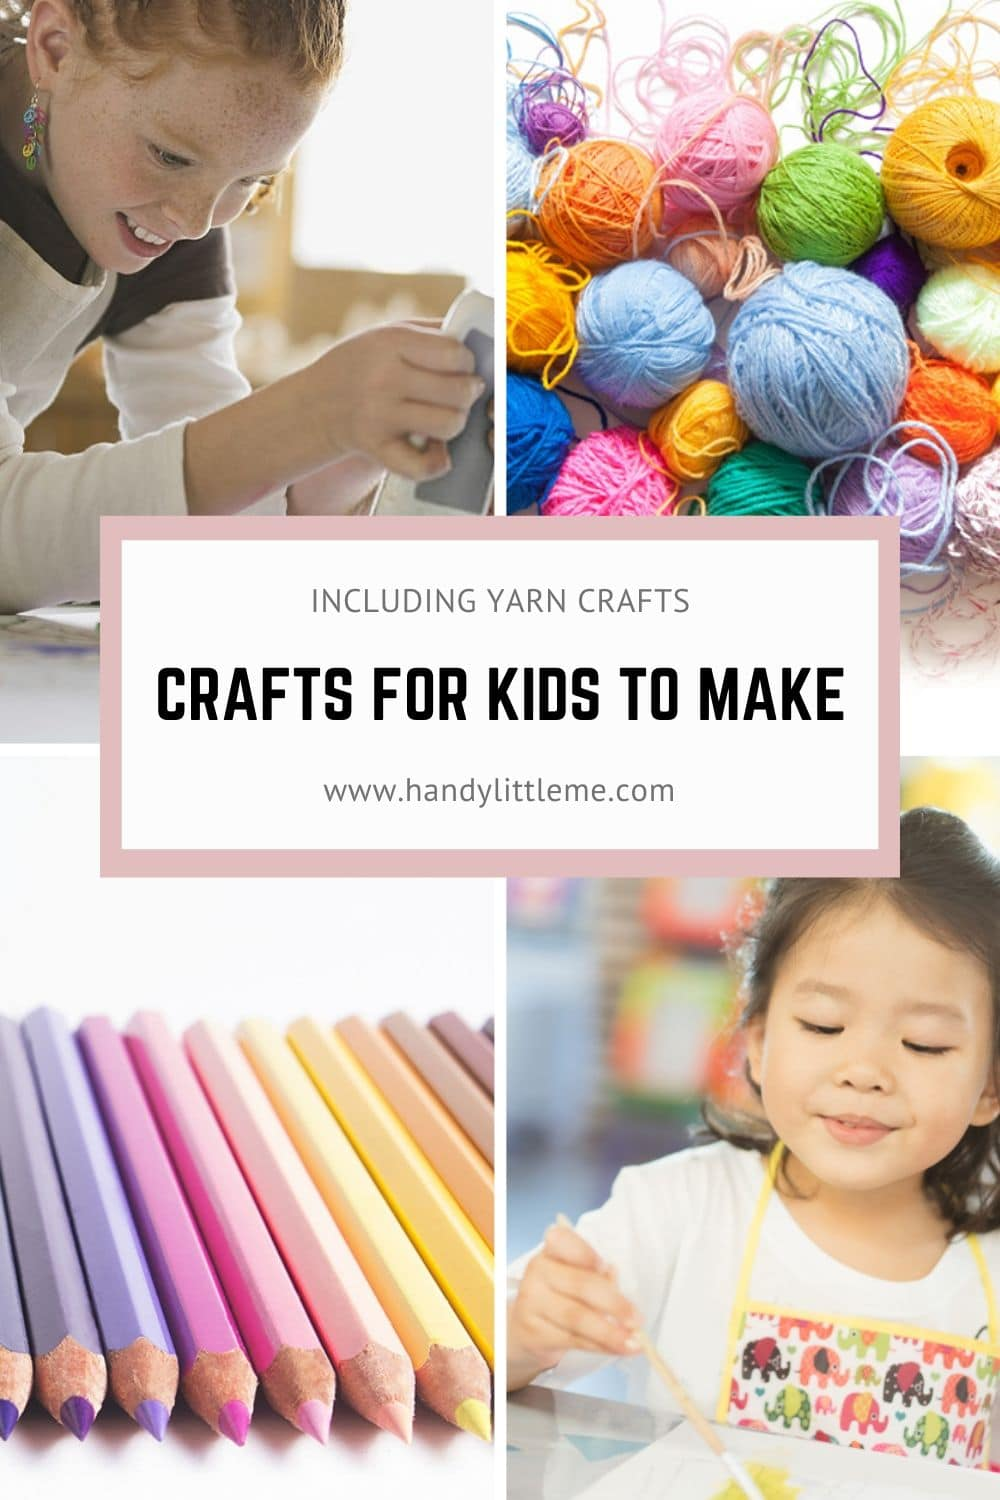 Crafts for kids to make that are easy and fun!